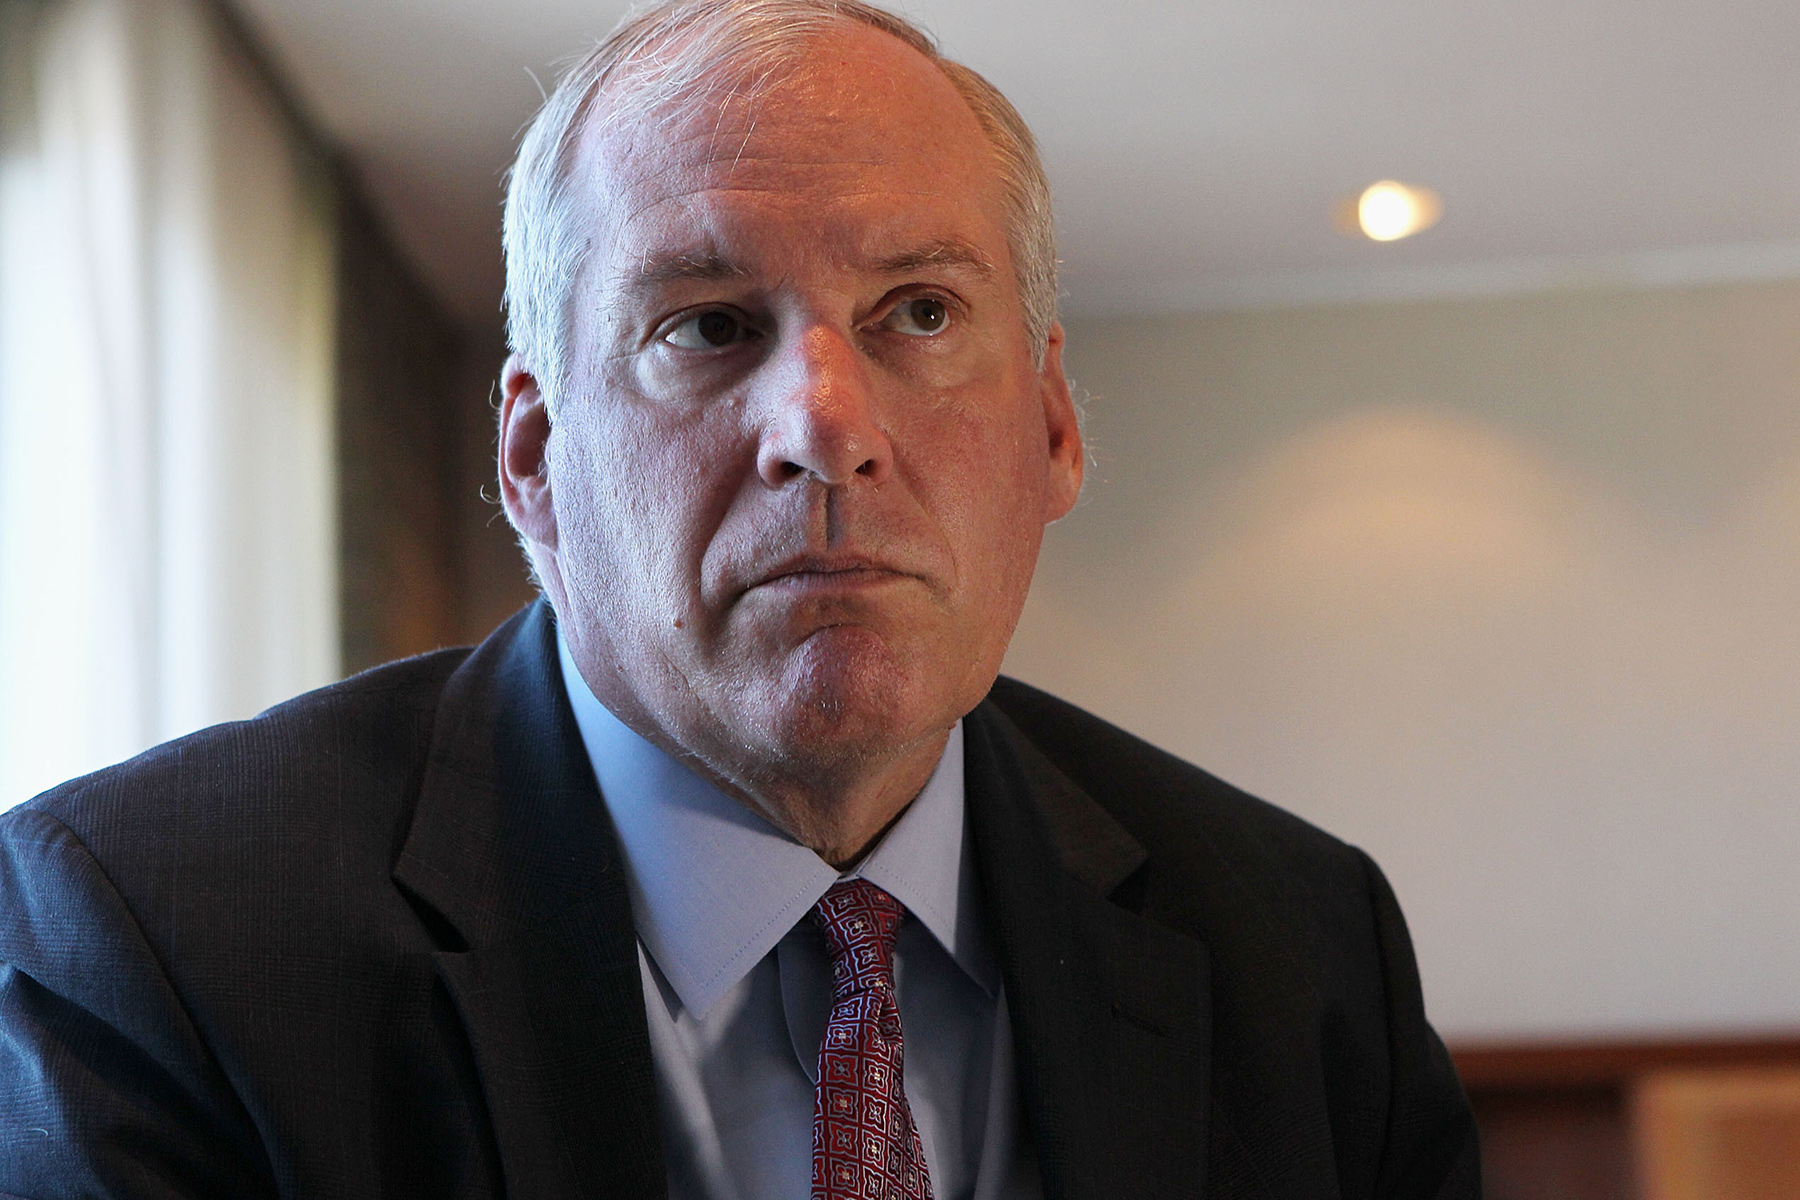 Boston Federal Reserve Bank President Eric Rosengren expressed concern about the shared office provider industry. (The Boston Globe/Getty Images)